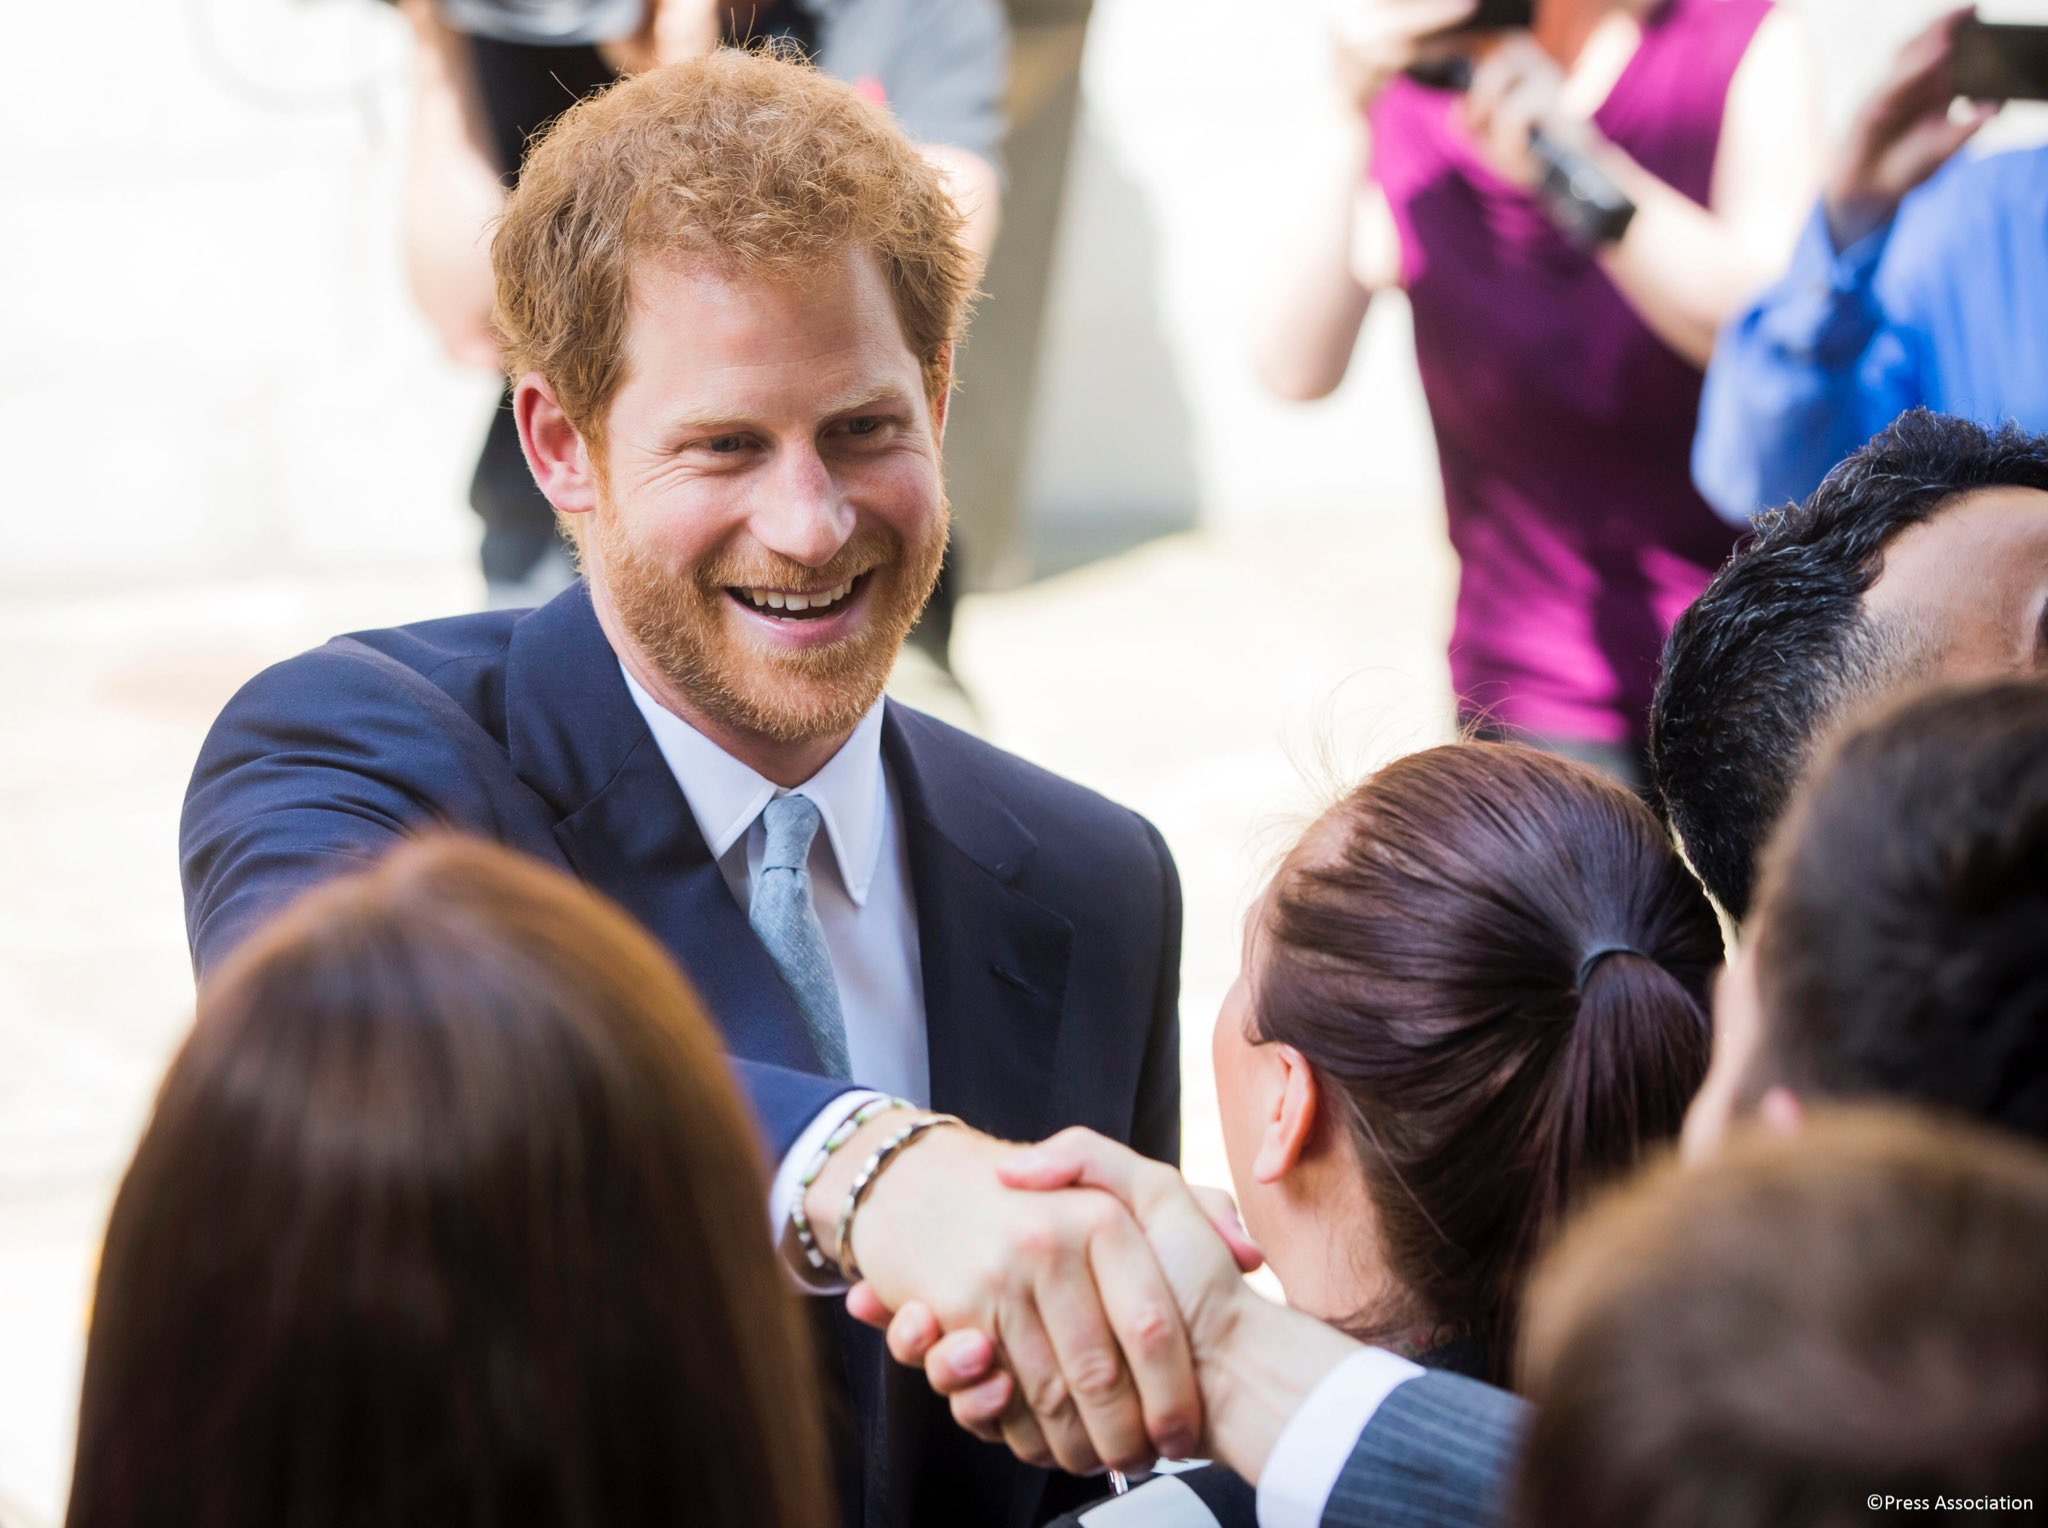 Thank you for all of the kind messages wishing Prince Harry a happy birthday!